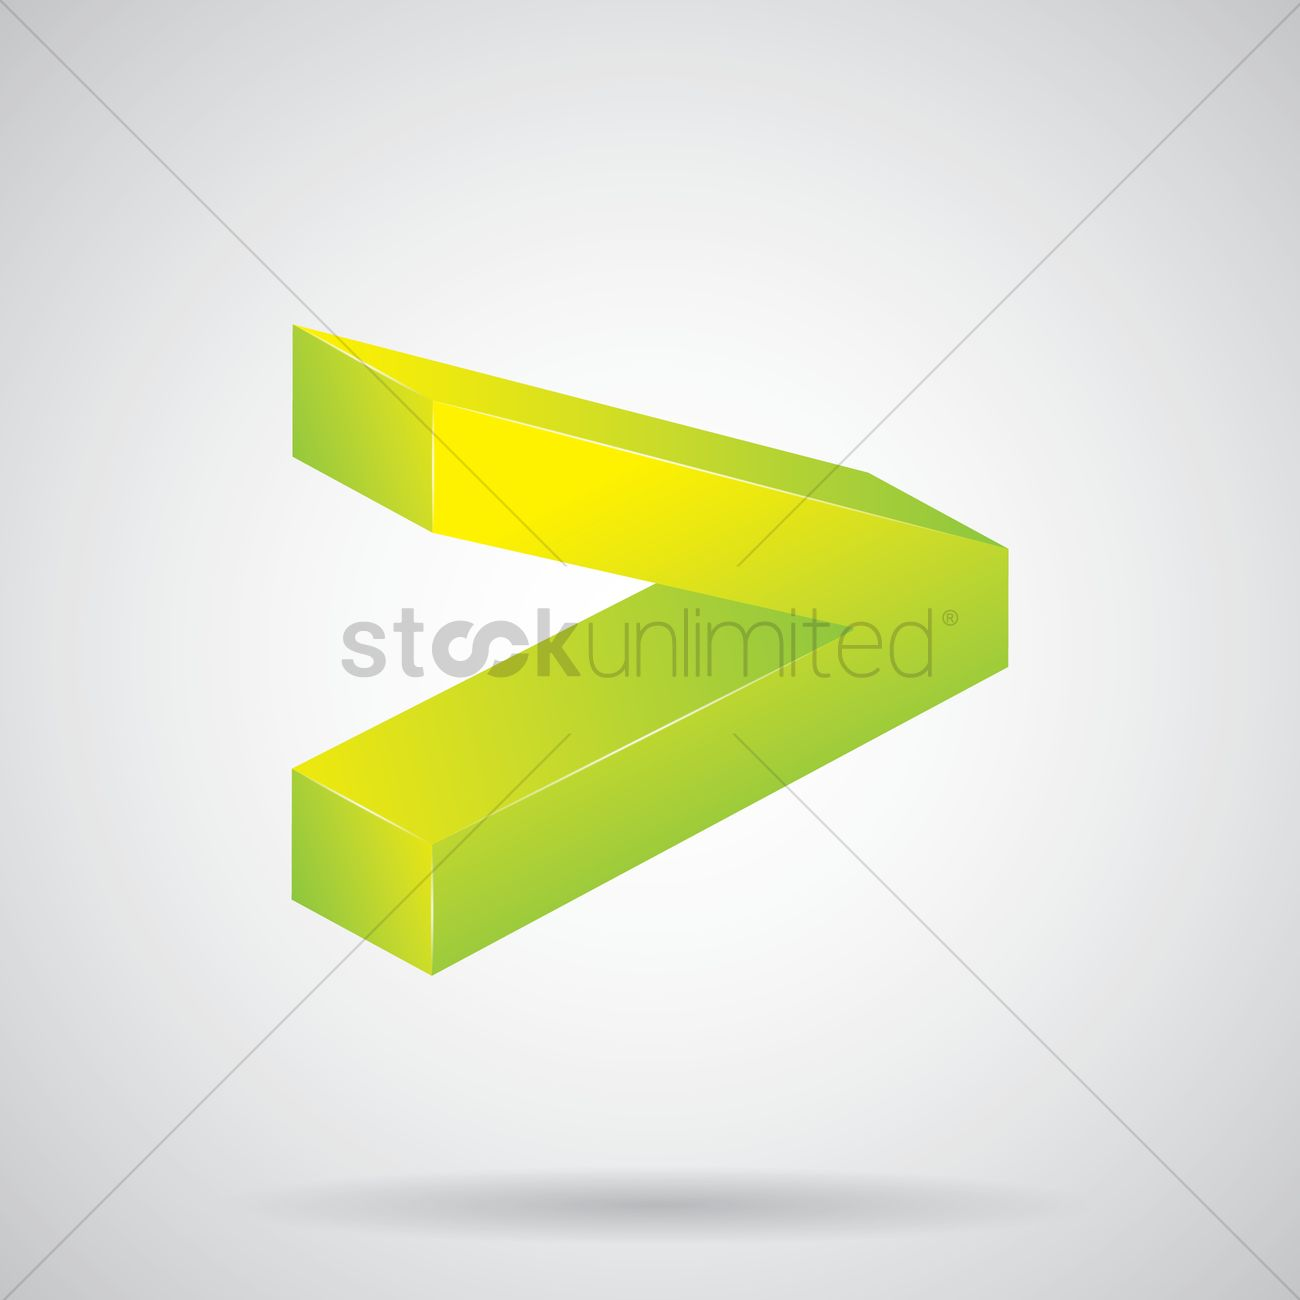 Greater Than Sign Vector Image 1608949 Stockunlimited